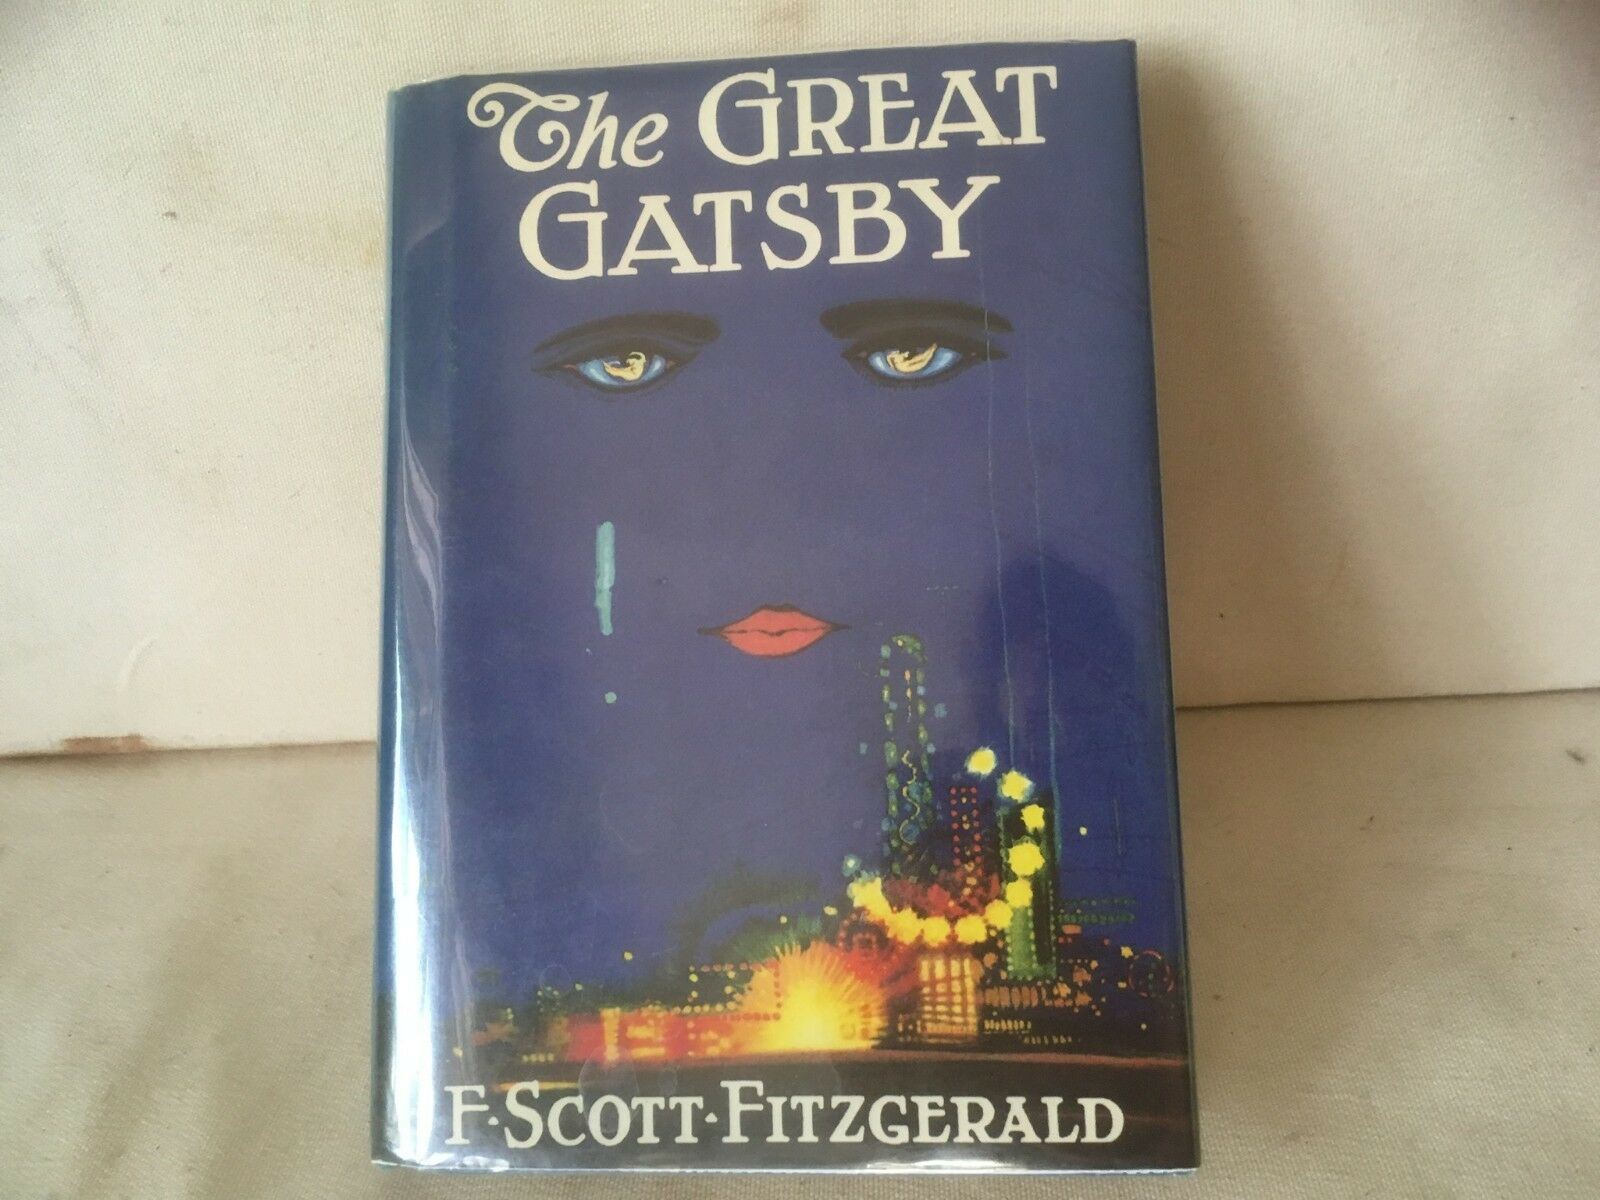 american dream portrayed great gatsby f scott fitzgerald The american dream is interwoven and deeply embedded in every fabric of american life it has also been the focal point of many novels in american literature this dream, as seen in the great gatsby, is associated with rugged individualism, generous enthusiasm and idealism in the pursuit of success.